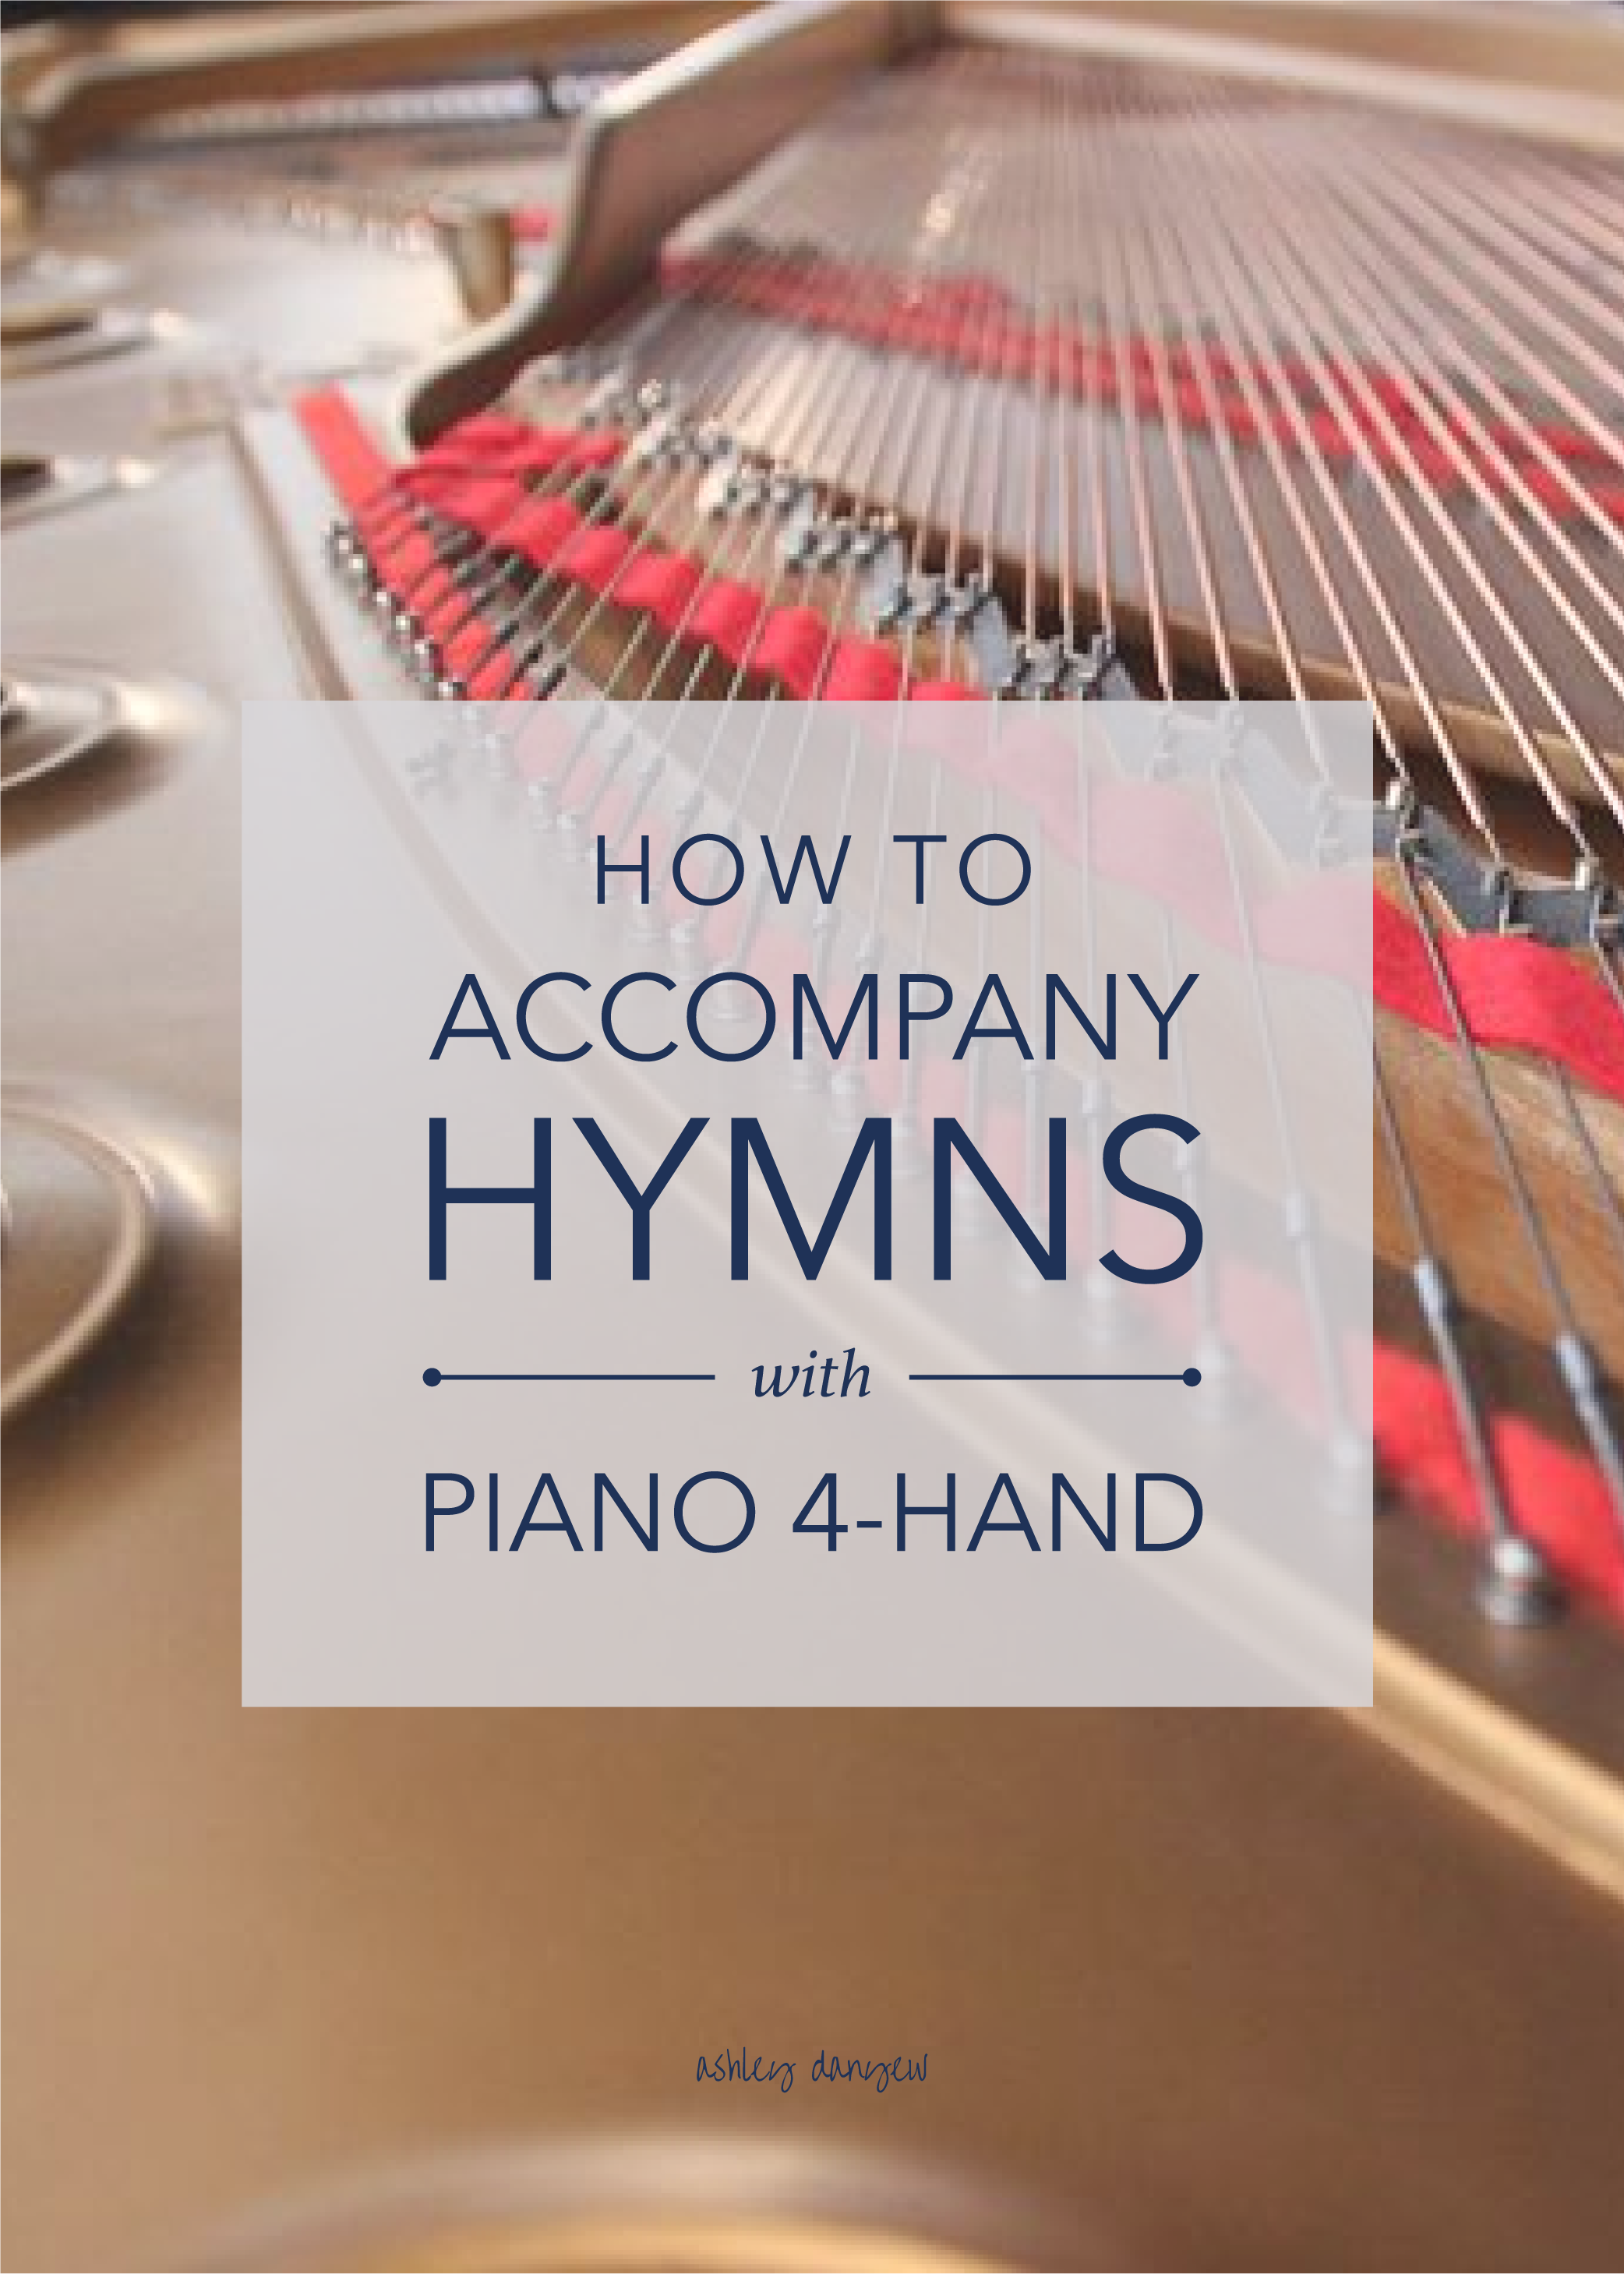 How to Accompany Hymns with Piano 4-Hand-45.png